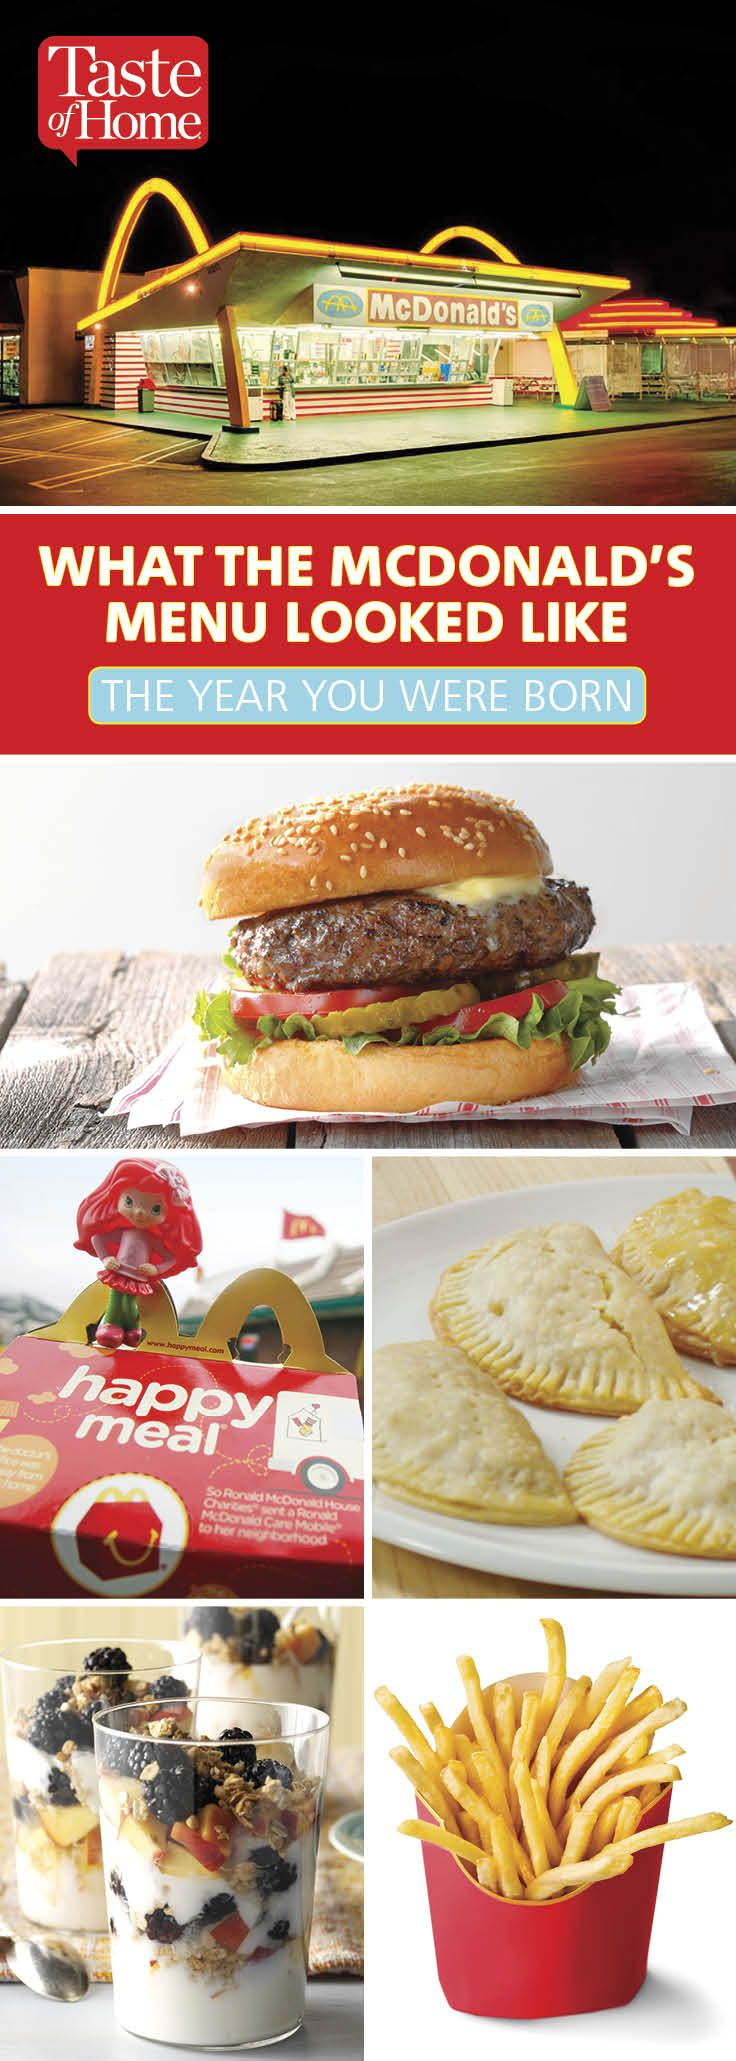 What the McDonald's Menu Looked Like the Year You Were